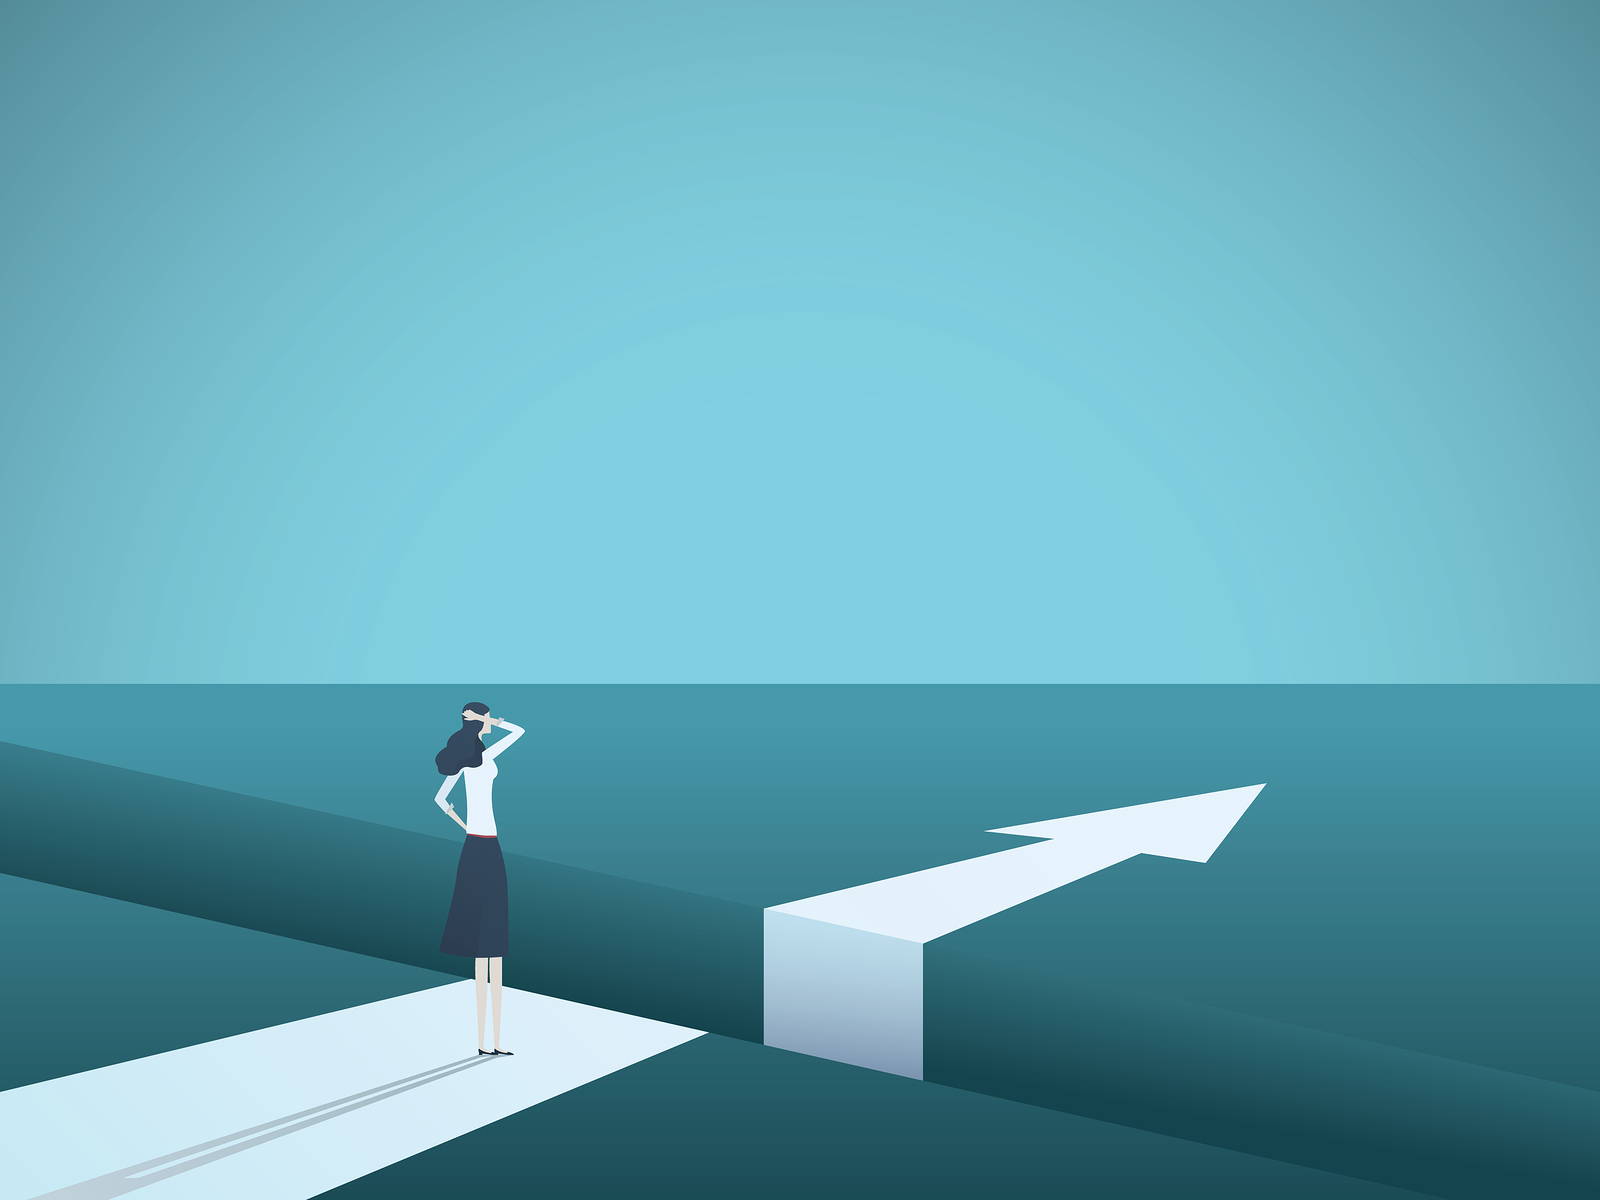 5 Steps to Reduce the Leadership Power Gap